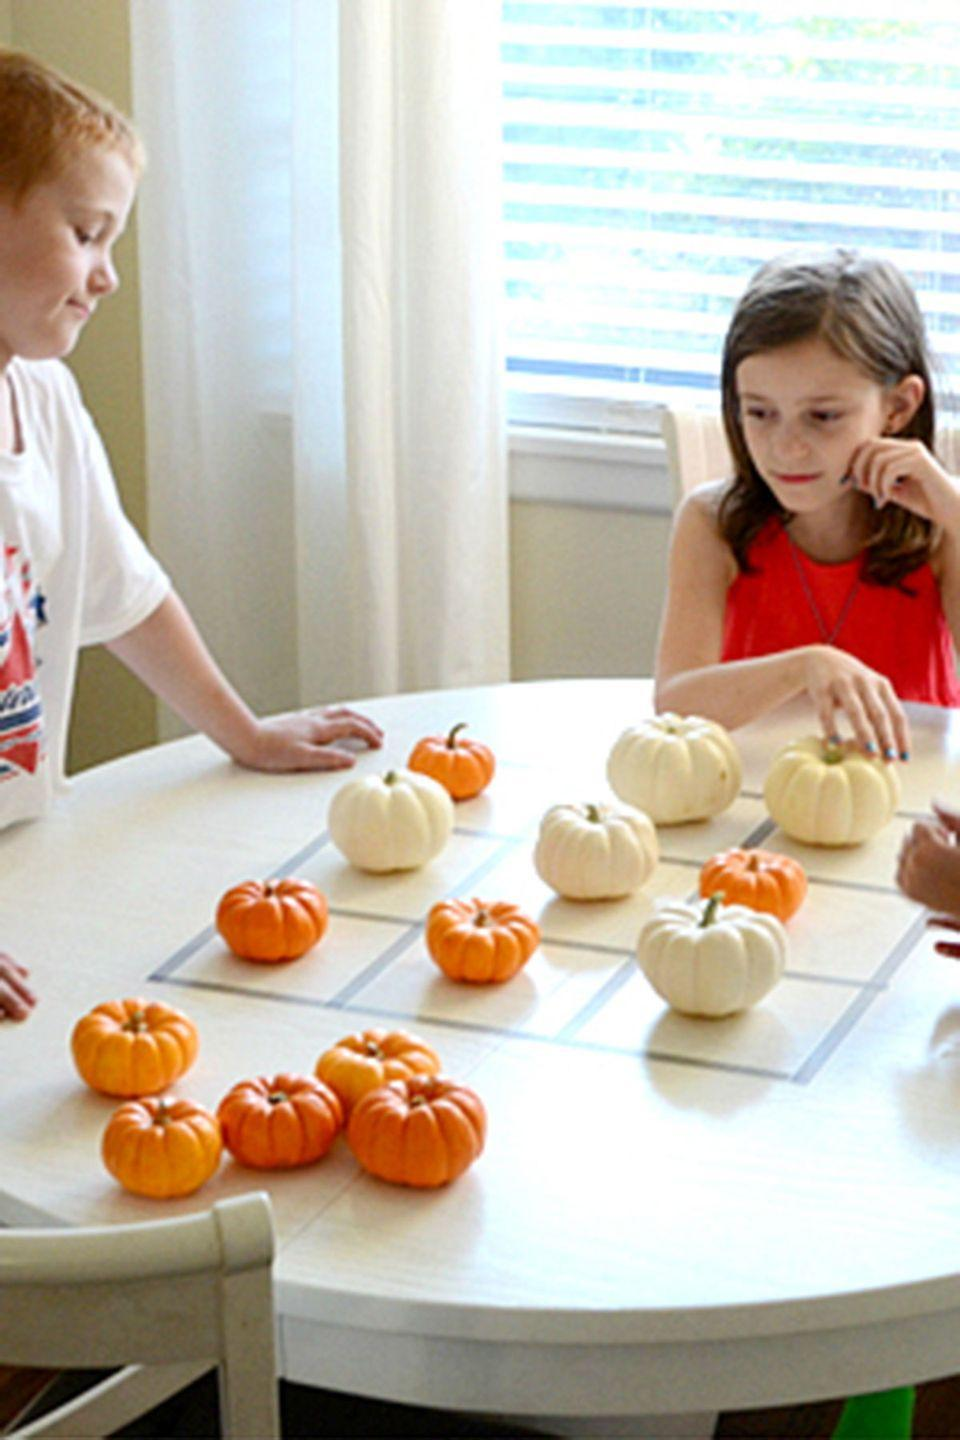 """<p>Put a fall spin on this classic game. All you'll need are mini pumpkins in two different colors.</p><p><strong>Get the tutorial at <a href=""""http://www.itsoverflowing.com/2012/11/create-a-kids-game/"""" rel=""""nofollow noopener"""" target=""""_blank"""" data-ylk=""""slk:It's Overflowing"""" class=""""link rapid-noclick-resp"""">It's Overflowing</a>.</strong> </p><p><a class=""""link rapid-noclick-resp"""" href=""""https://www.amazon.com/Sackorange-Colorful-Decorative-Christmas-Scrapbook/dp/B075VL6WW4/?tag=syn-yahoo-20&ascsubtag=%5Bartid%7C10050.g.4698%5Bsrc%7Cyahoo-us"""" rel=""""nofollow noopener"""" target=""""_blank"""" data-ylk=""""slk:SHOP WASHI TAPE"""">SHOP WASHI TAPE</a></p>"""